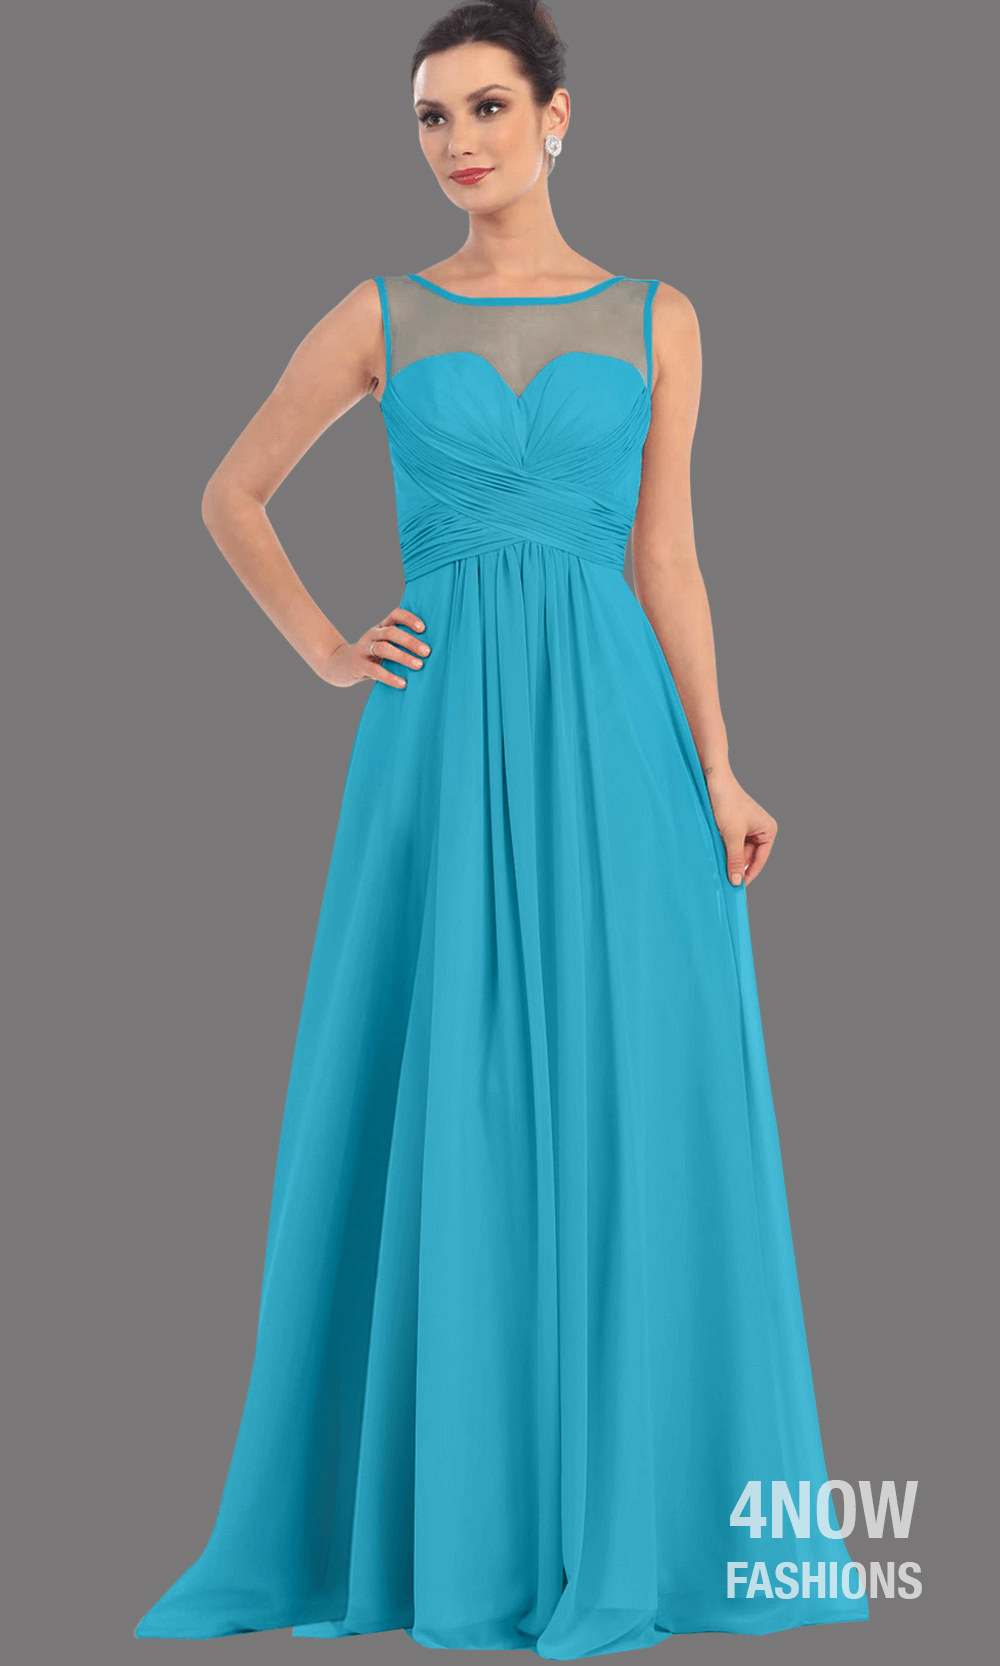 Turquoise Long Illusion Neckline Dress